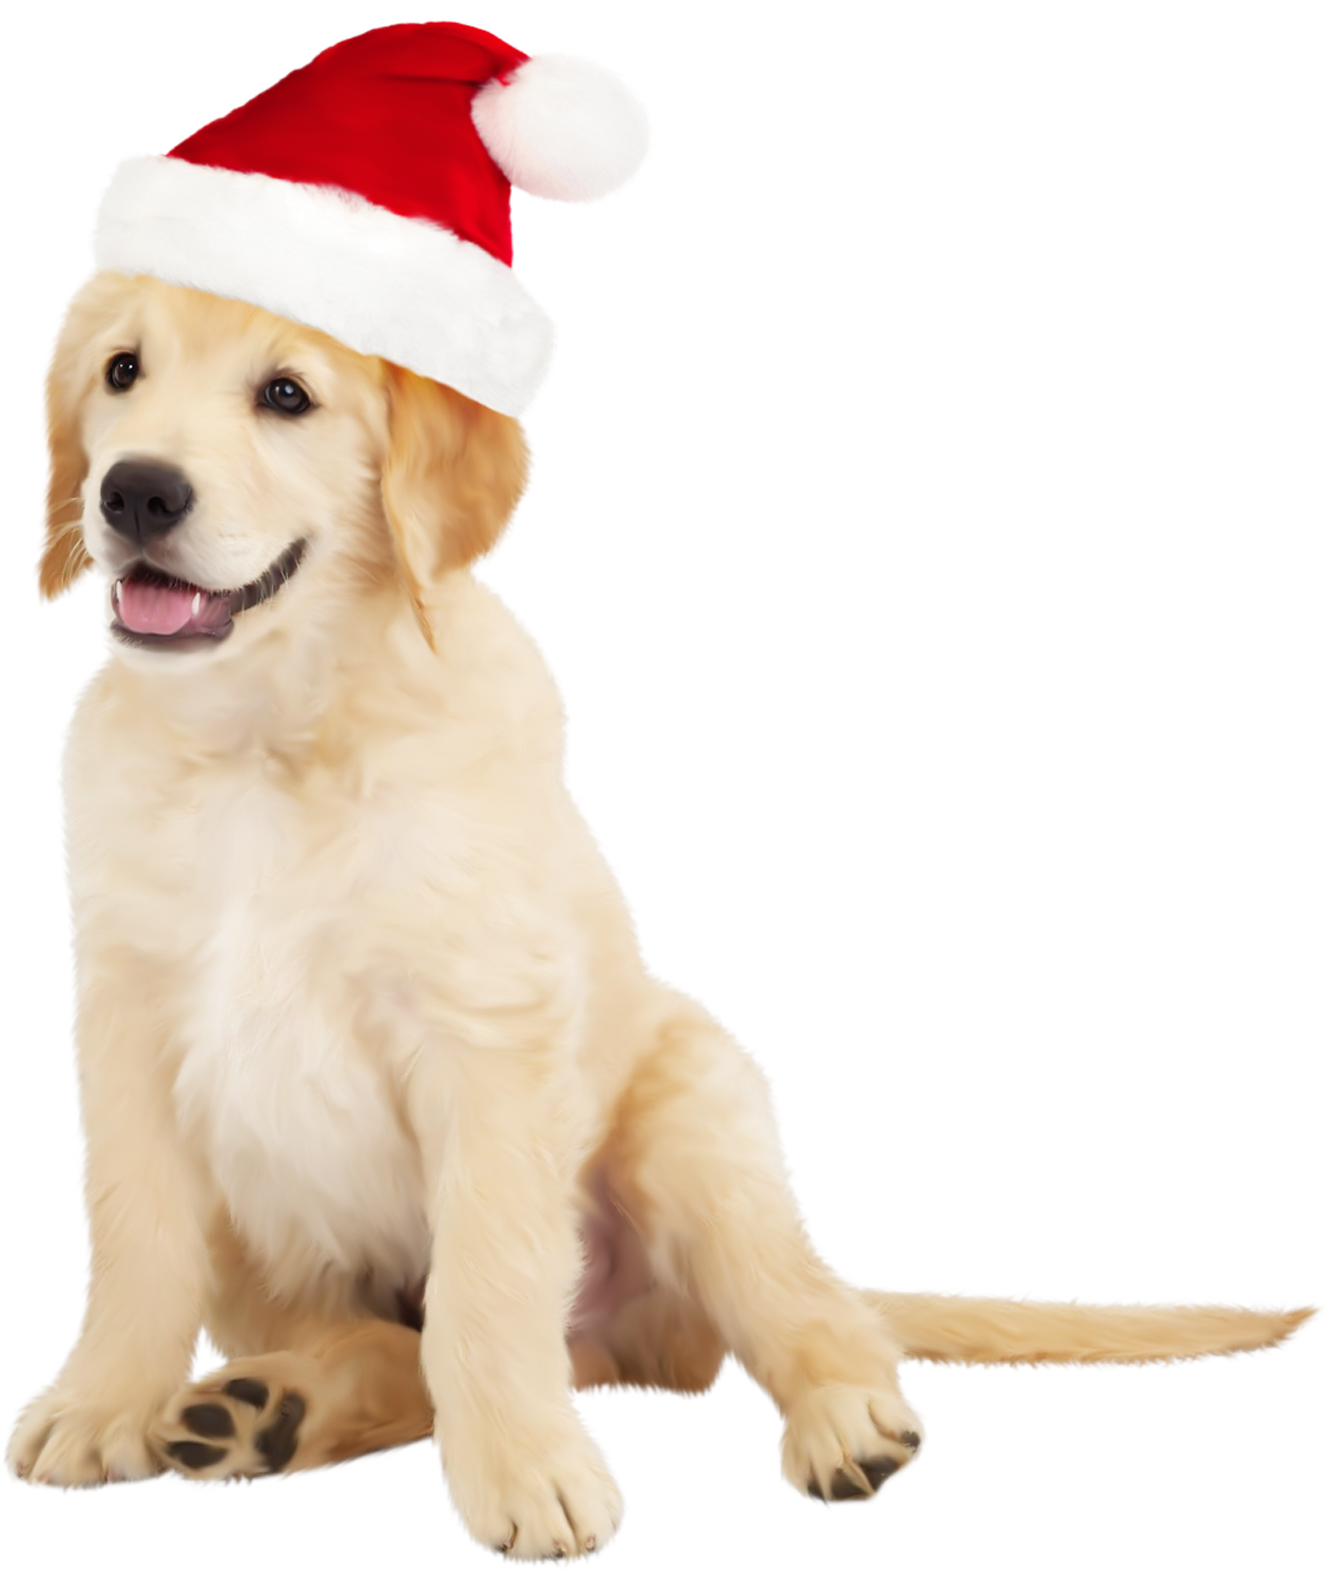 royalty free download Golden retriever clipart realistic dog. Cute with santa hat